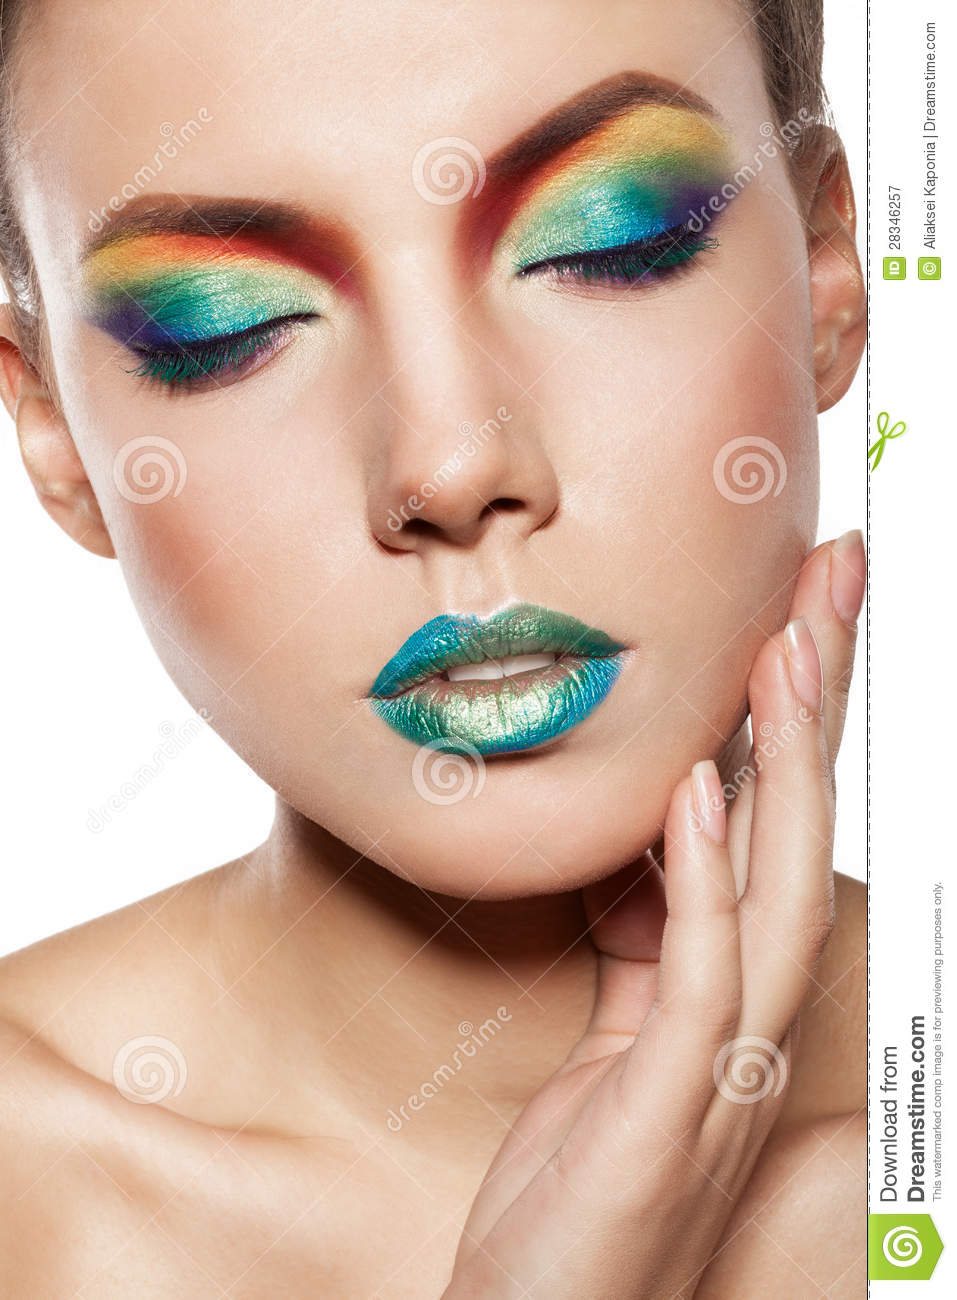 rainbow makeup stock image image of face brunette